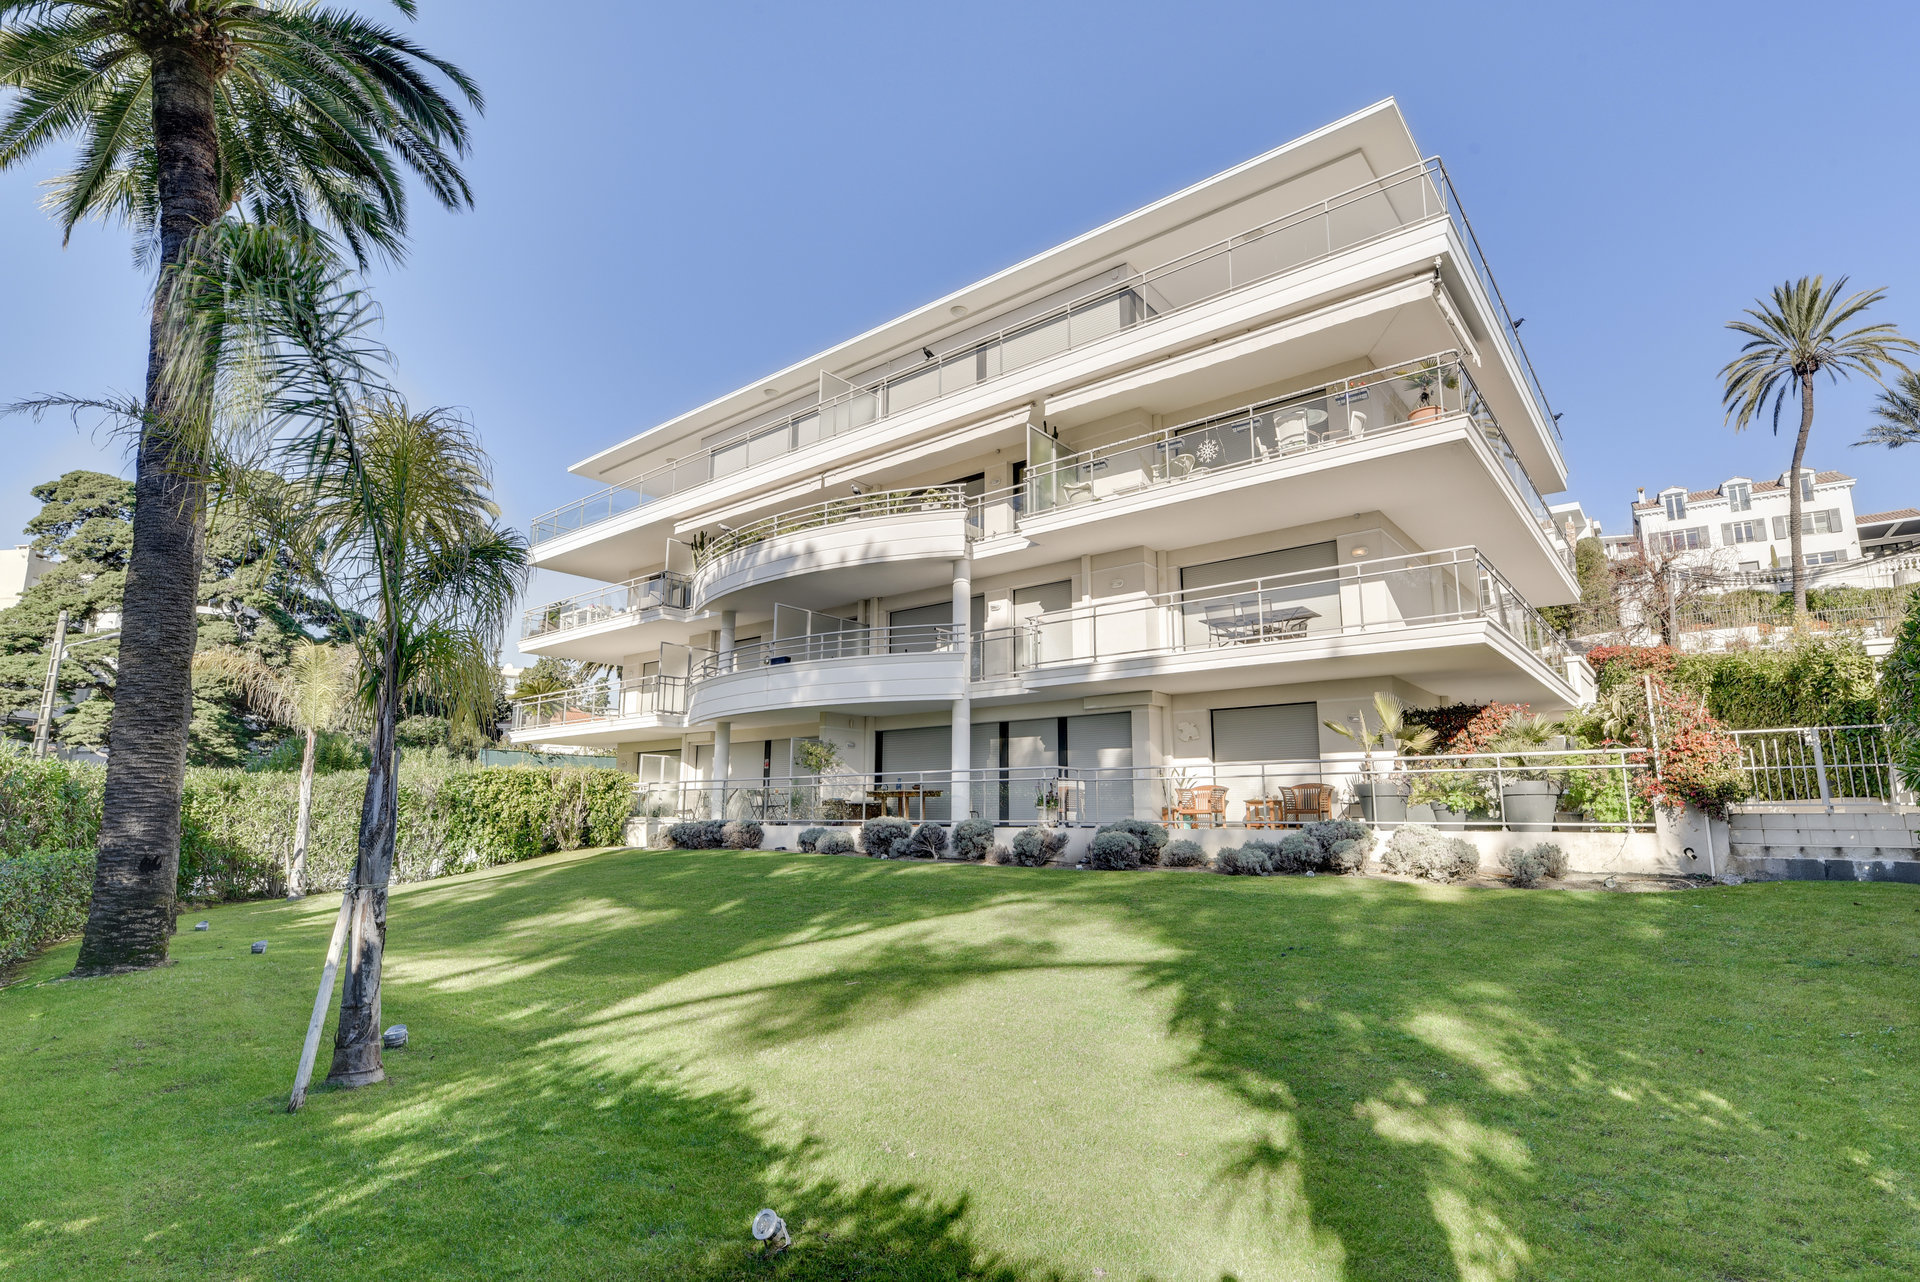 Modern 1 bedroom apartment with terrace and garagein wonderful Cannes Californie.